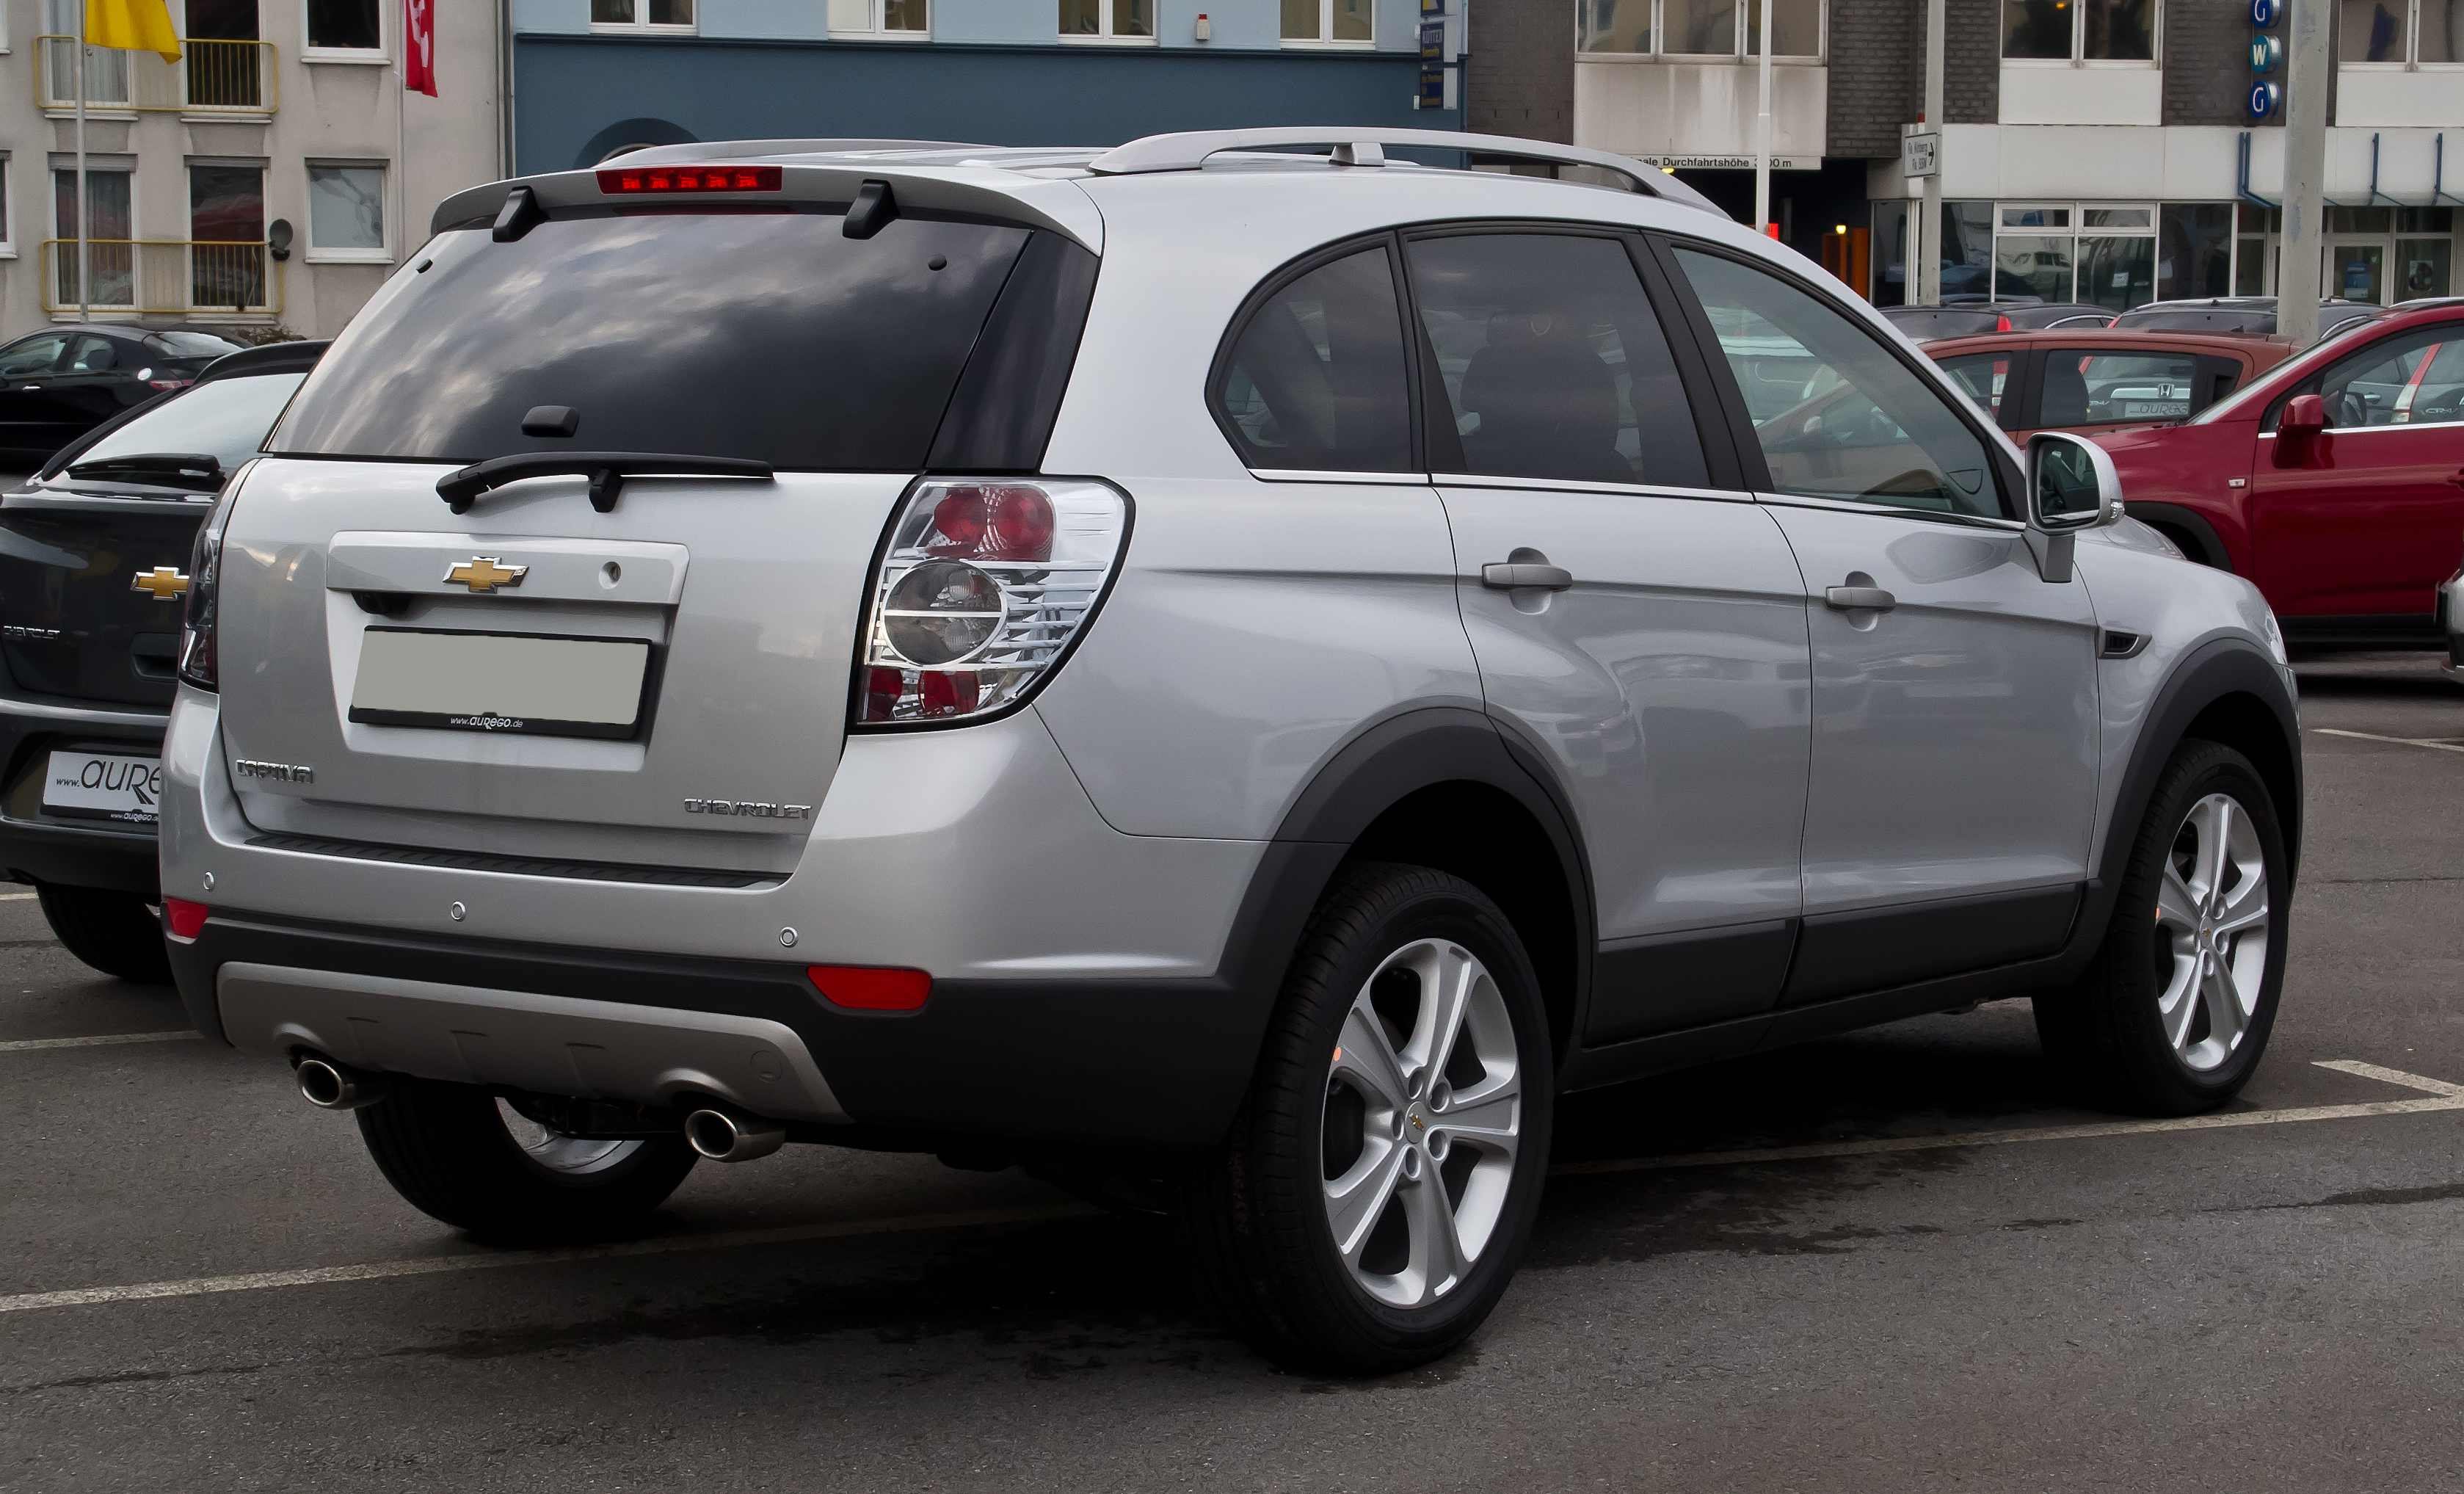 Chevrolet captiva photo 08